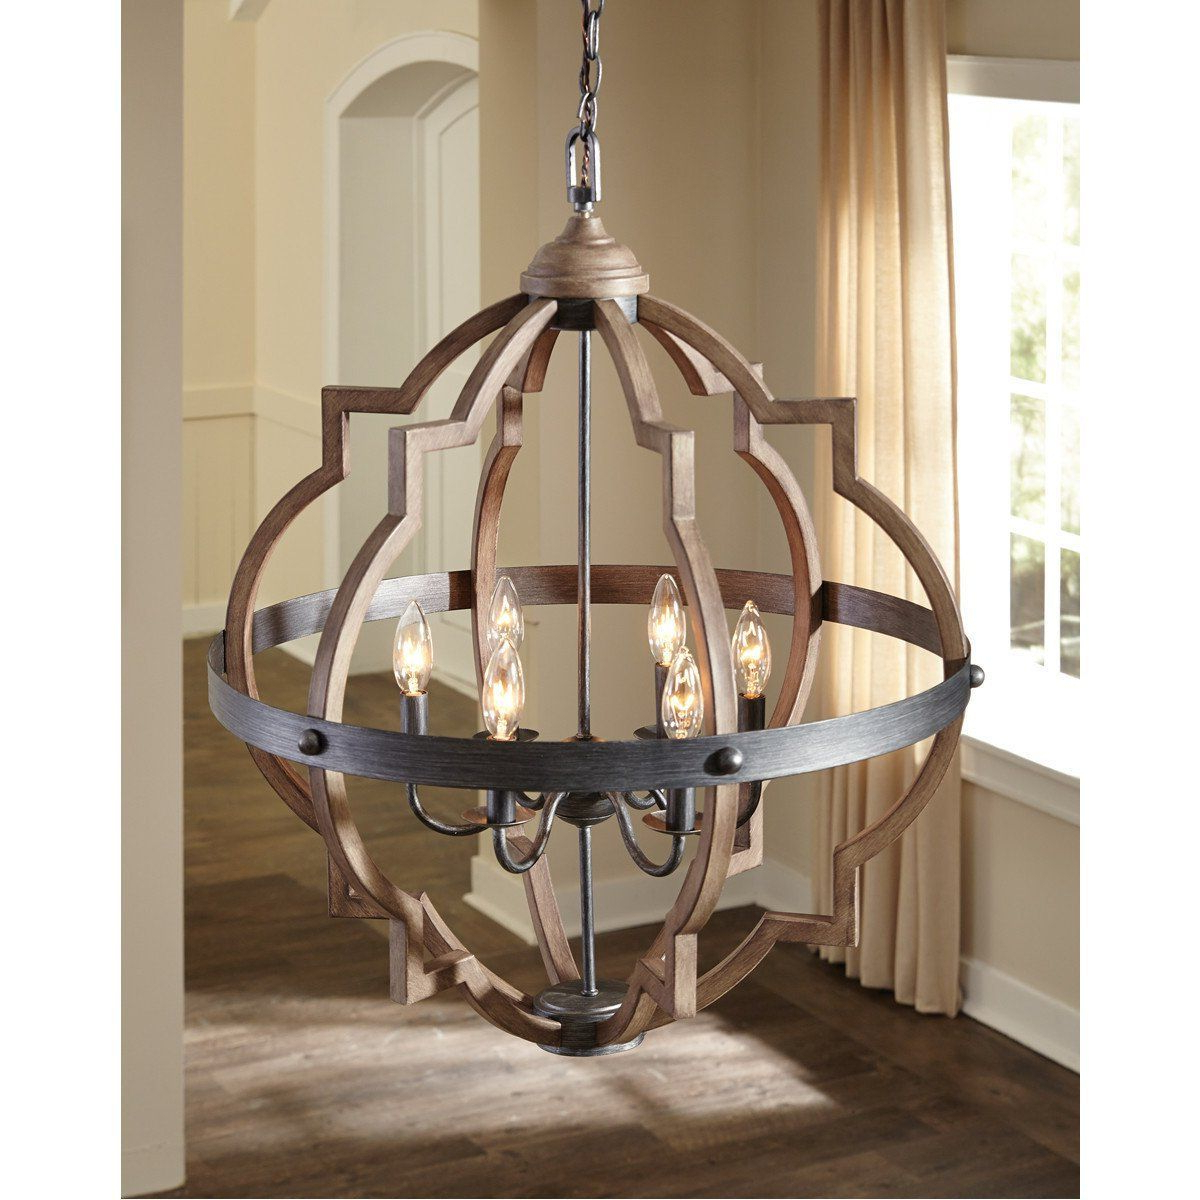 Bennington 4 Light Candle Style Chandeliers Intended For Most Recent Sea Gull Lighting Stardust/cerused Oak Four Light Chandelier (Gallery 8 of 20)